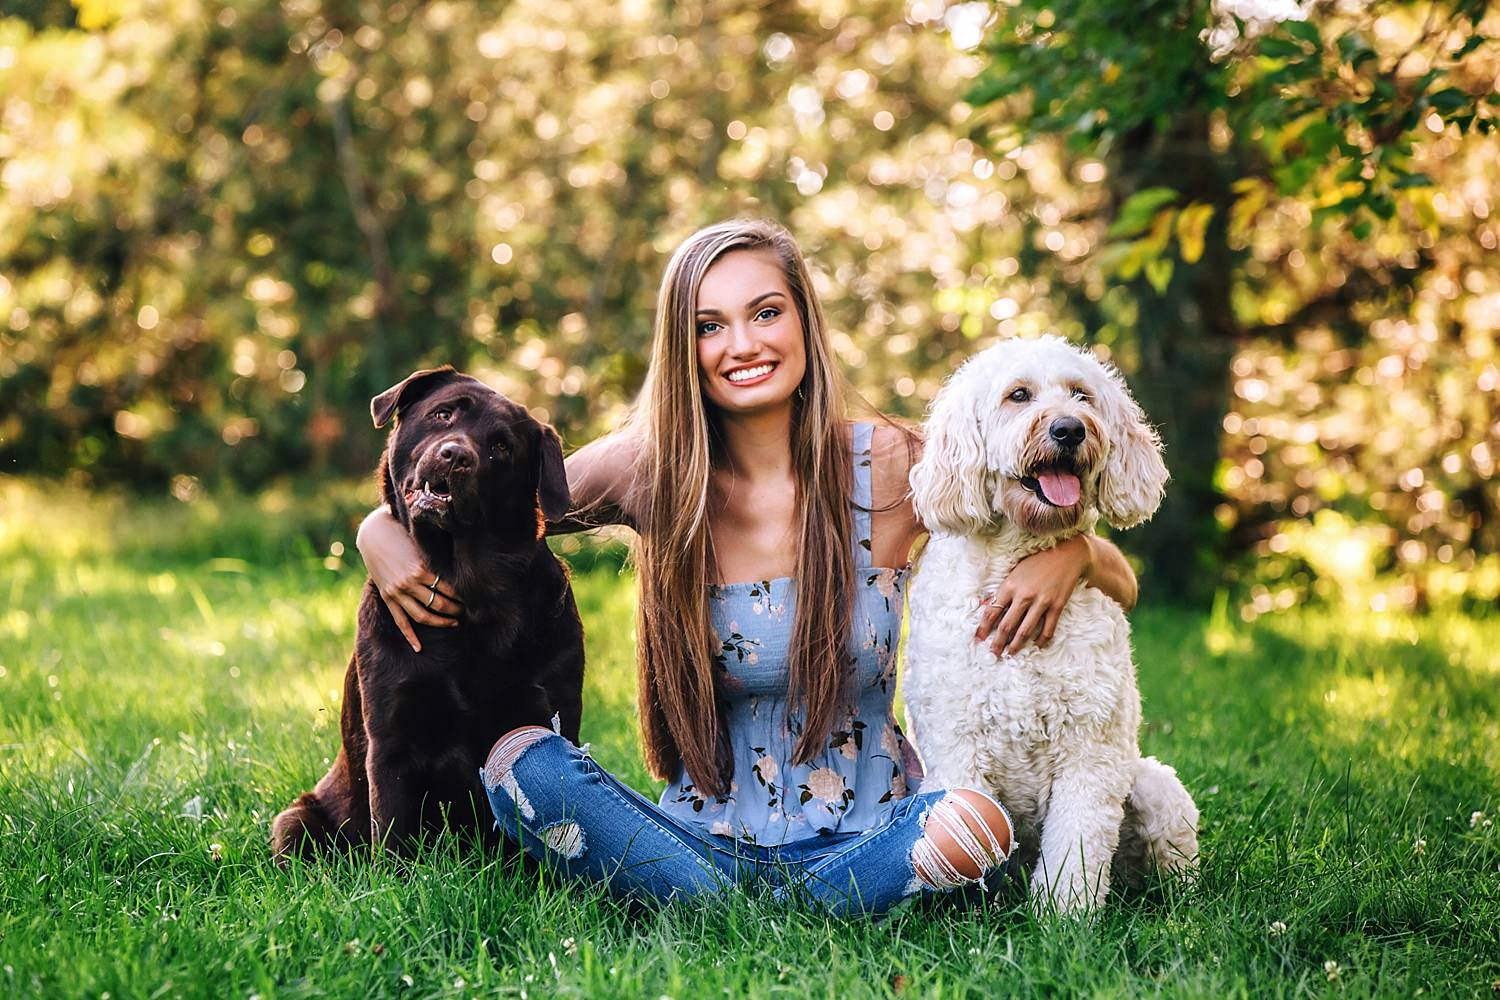 girl posing with dogs for senior portraits in field outside